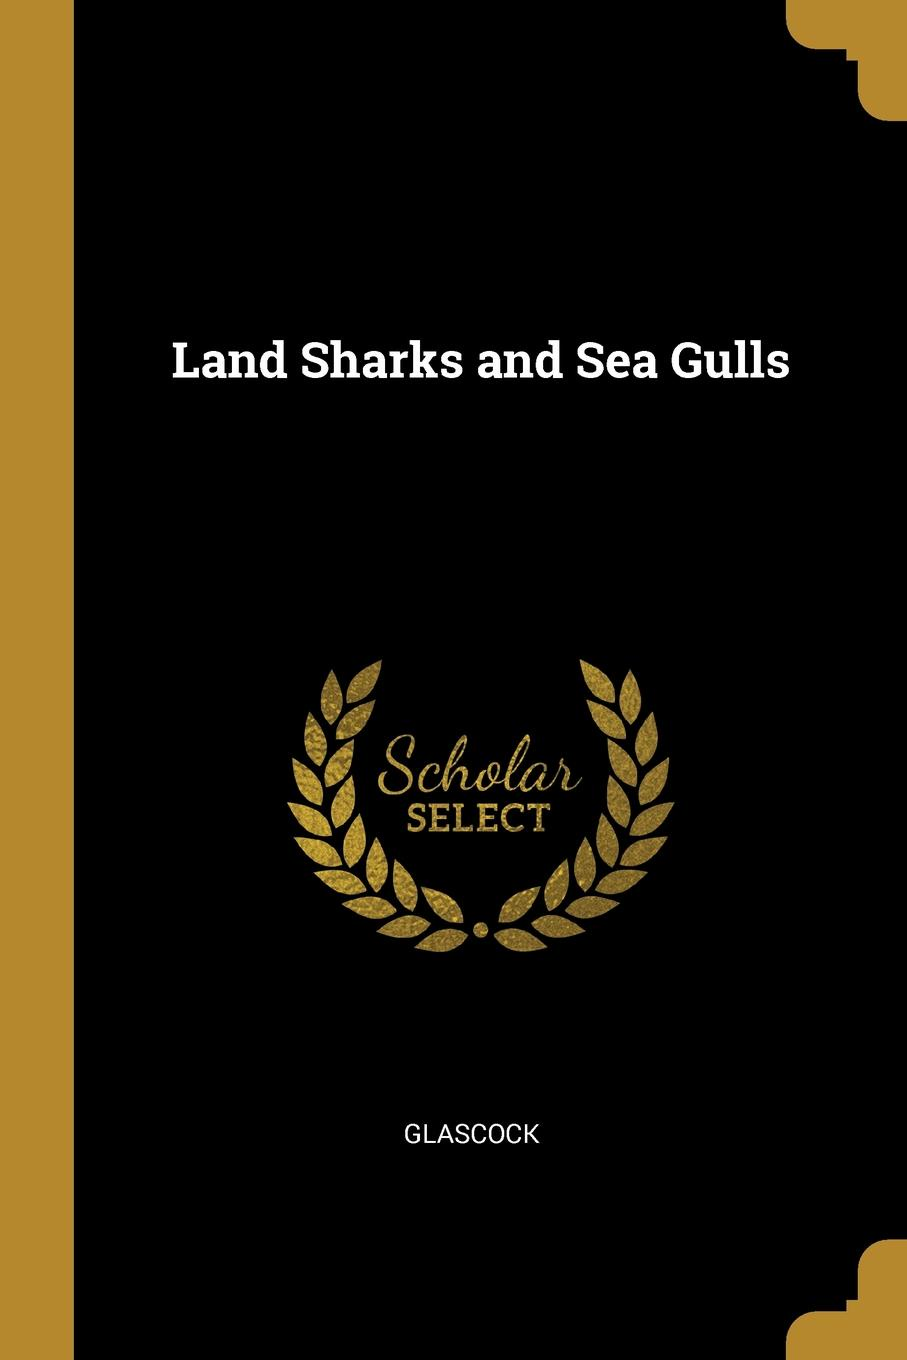 Glascock Land Sharks and Sea Gulls